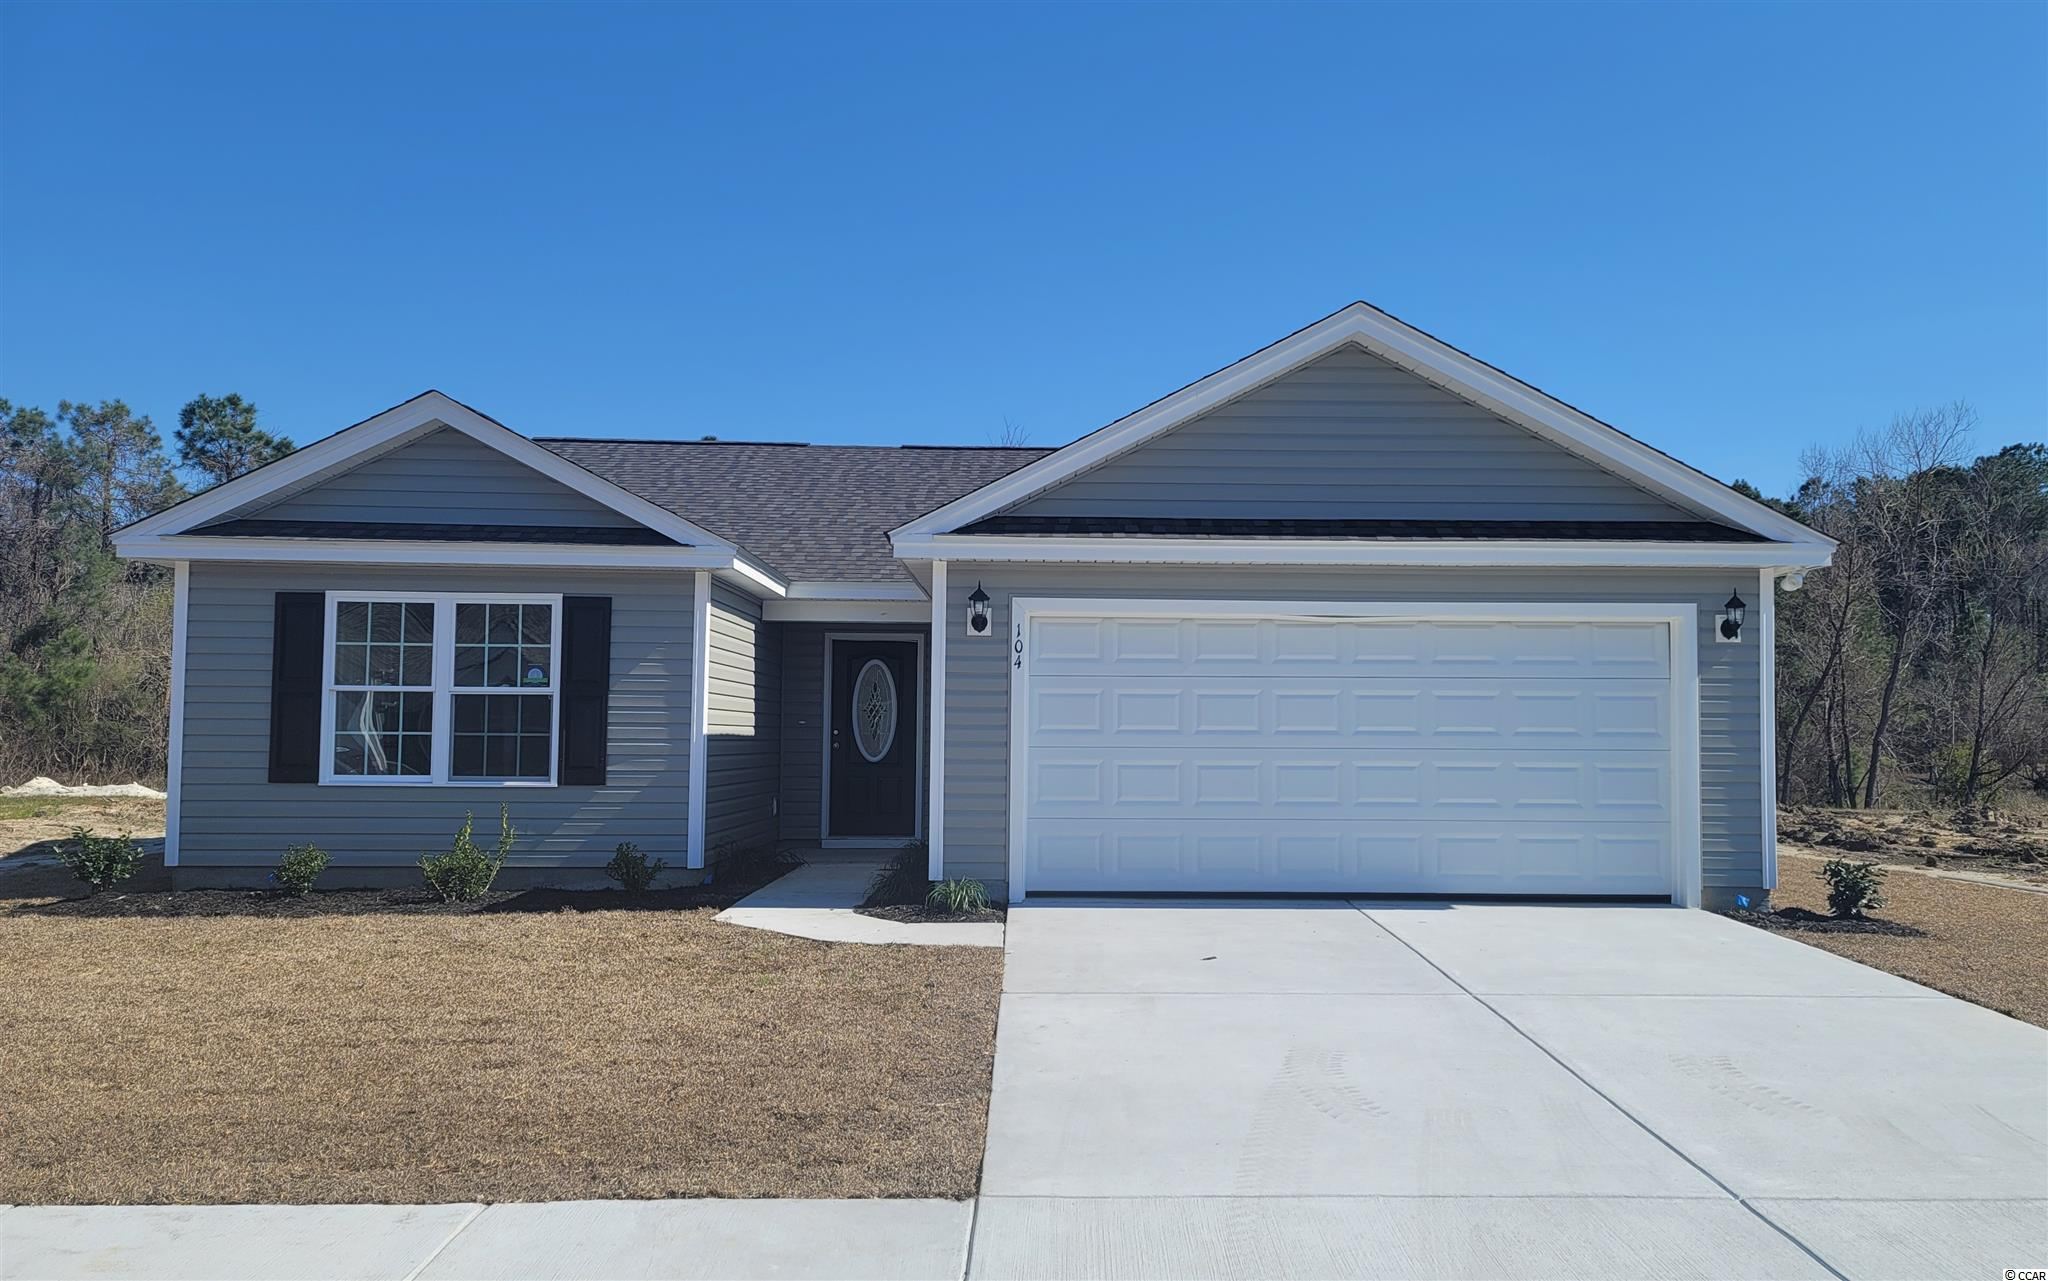 The Dewees Model is a one level home with 3 BR 2 Bath, 1334+/- heated sq. ft.  An open floor plan that features a spacious and comfortable kitchen overlooking the living room. This homes features includes but are not limited to: Low Maintenance Exterior Vinyl Siding. 30 Yr - Architectural shingles , Low E- Vinyl windows Large 2 Car Garage. Open Kitchen with Stainless Steel Appliances, Spacious Bedrooms,  5 ft. walk-in shower in Master Bathroom -  cultured marble vanity top in bathrooms. Pictures are of a similar plan model home and are for illustration purposes only. Beverly homes offers home customization and floor plan changes. Georgetown Estates is a premier community conveniently located along HWY 521,  easily access both  downtown Andrews and the Historic Georgetown, SC.  sidewalks wind throughout the community.  Huge oaks and beautiful mature trees surround this gorgeous new community. Come experience the beautiful and sweet life that the low country of South Carolina and Georgetown Estates has to offer! Beverly Homes is a equal opportunity Builder.